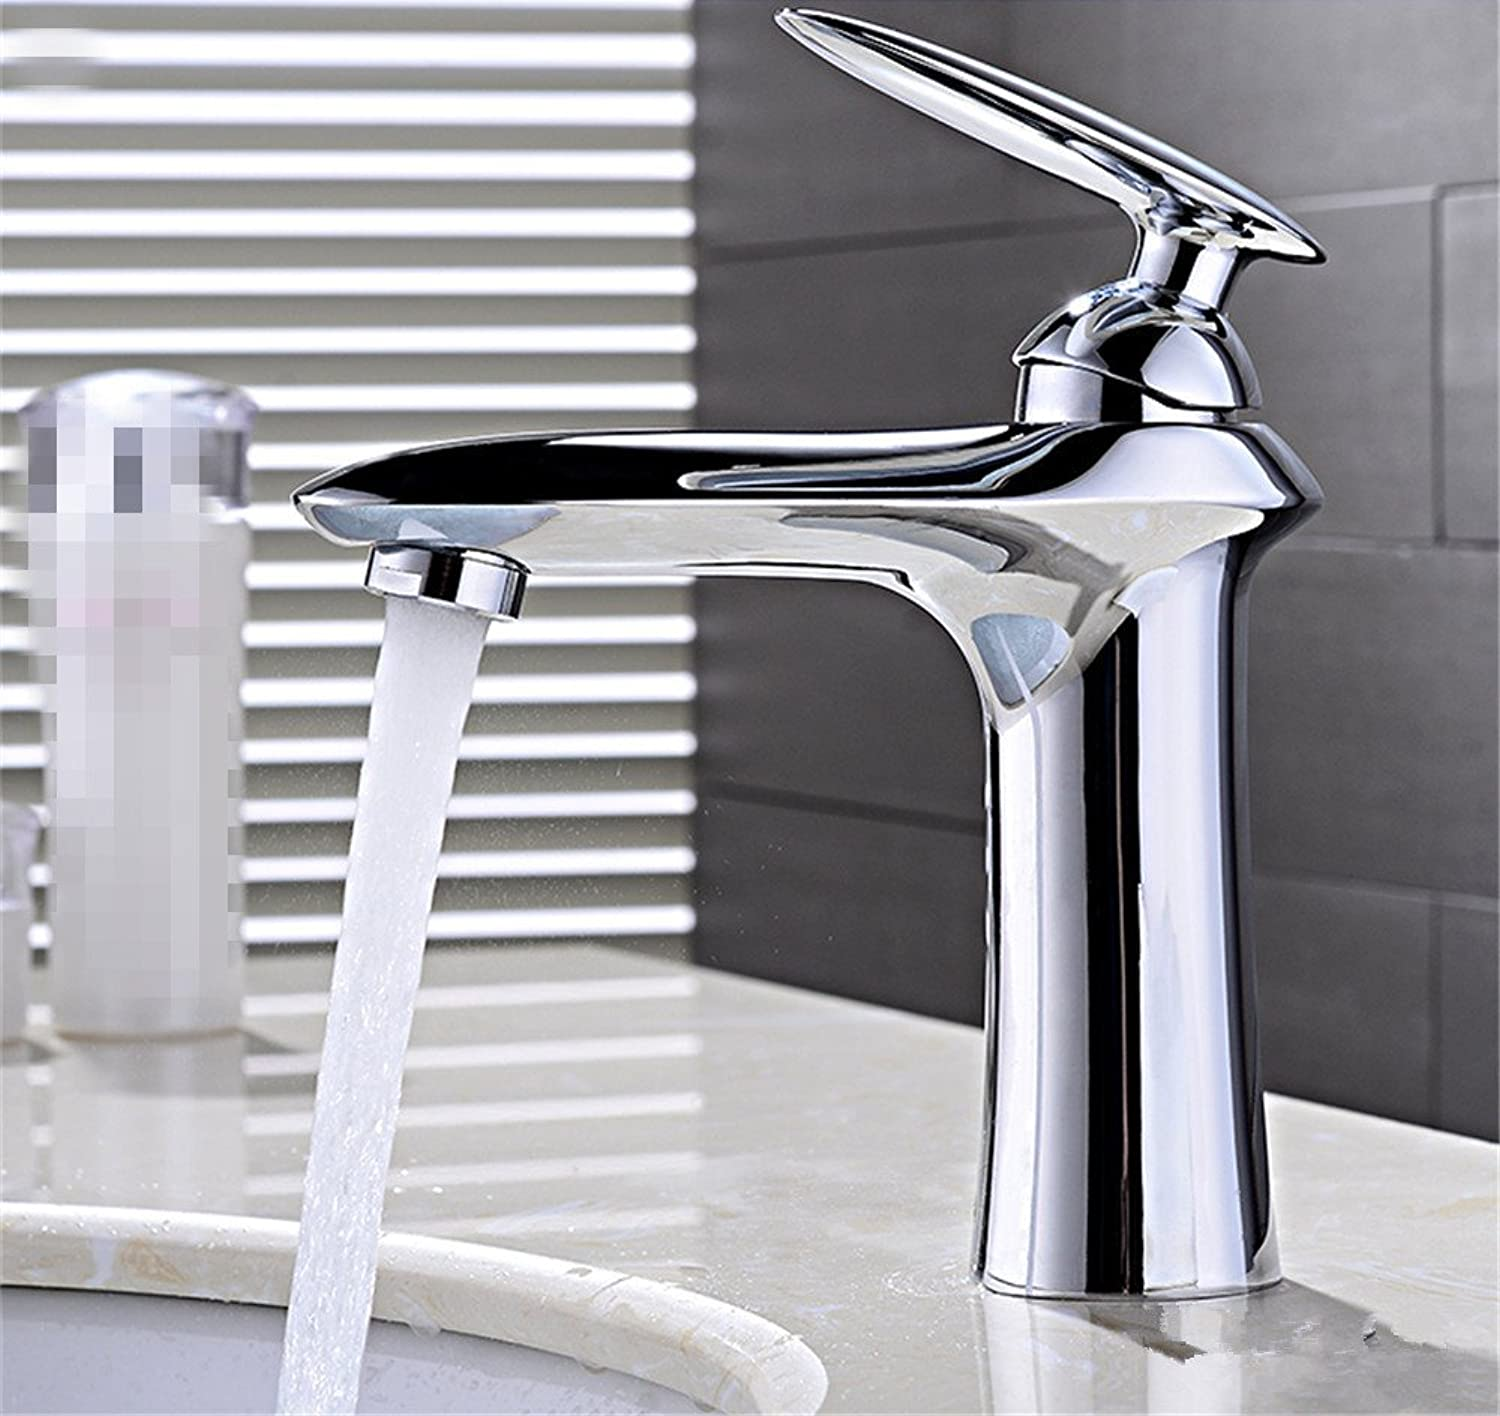 Hlluya Professional Sink Mixer Tap Kitchen Faucet The copper cold water faucets bathroom vanity sink basin single hole Faucet